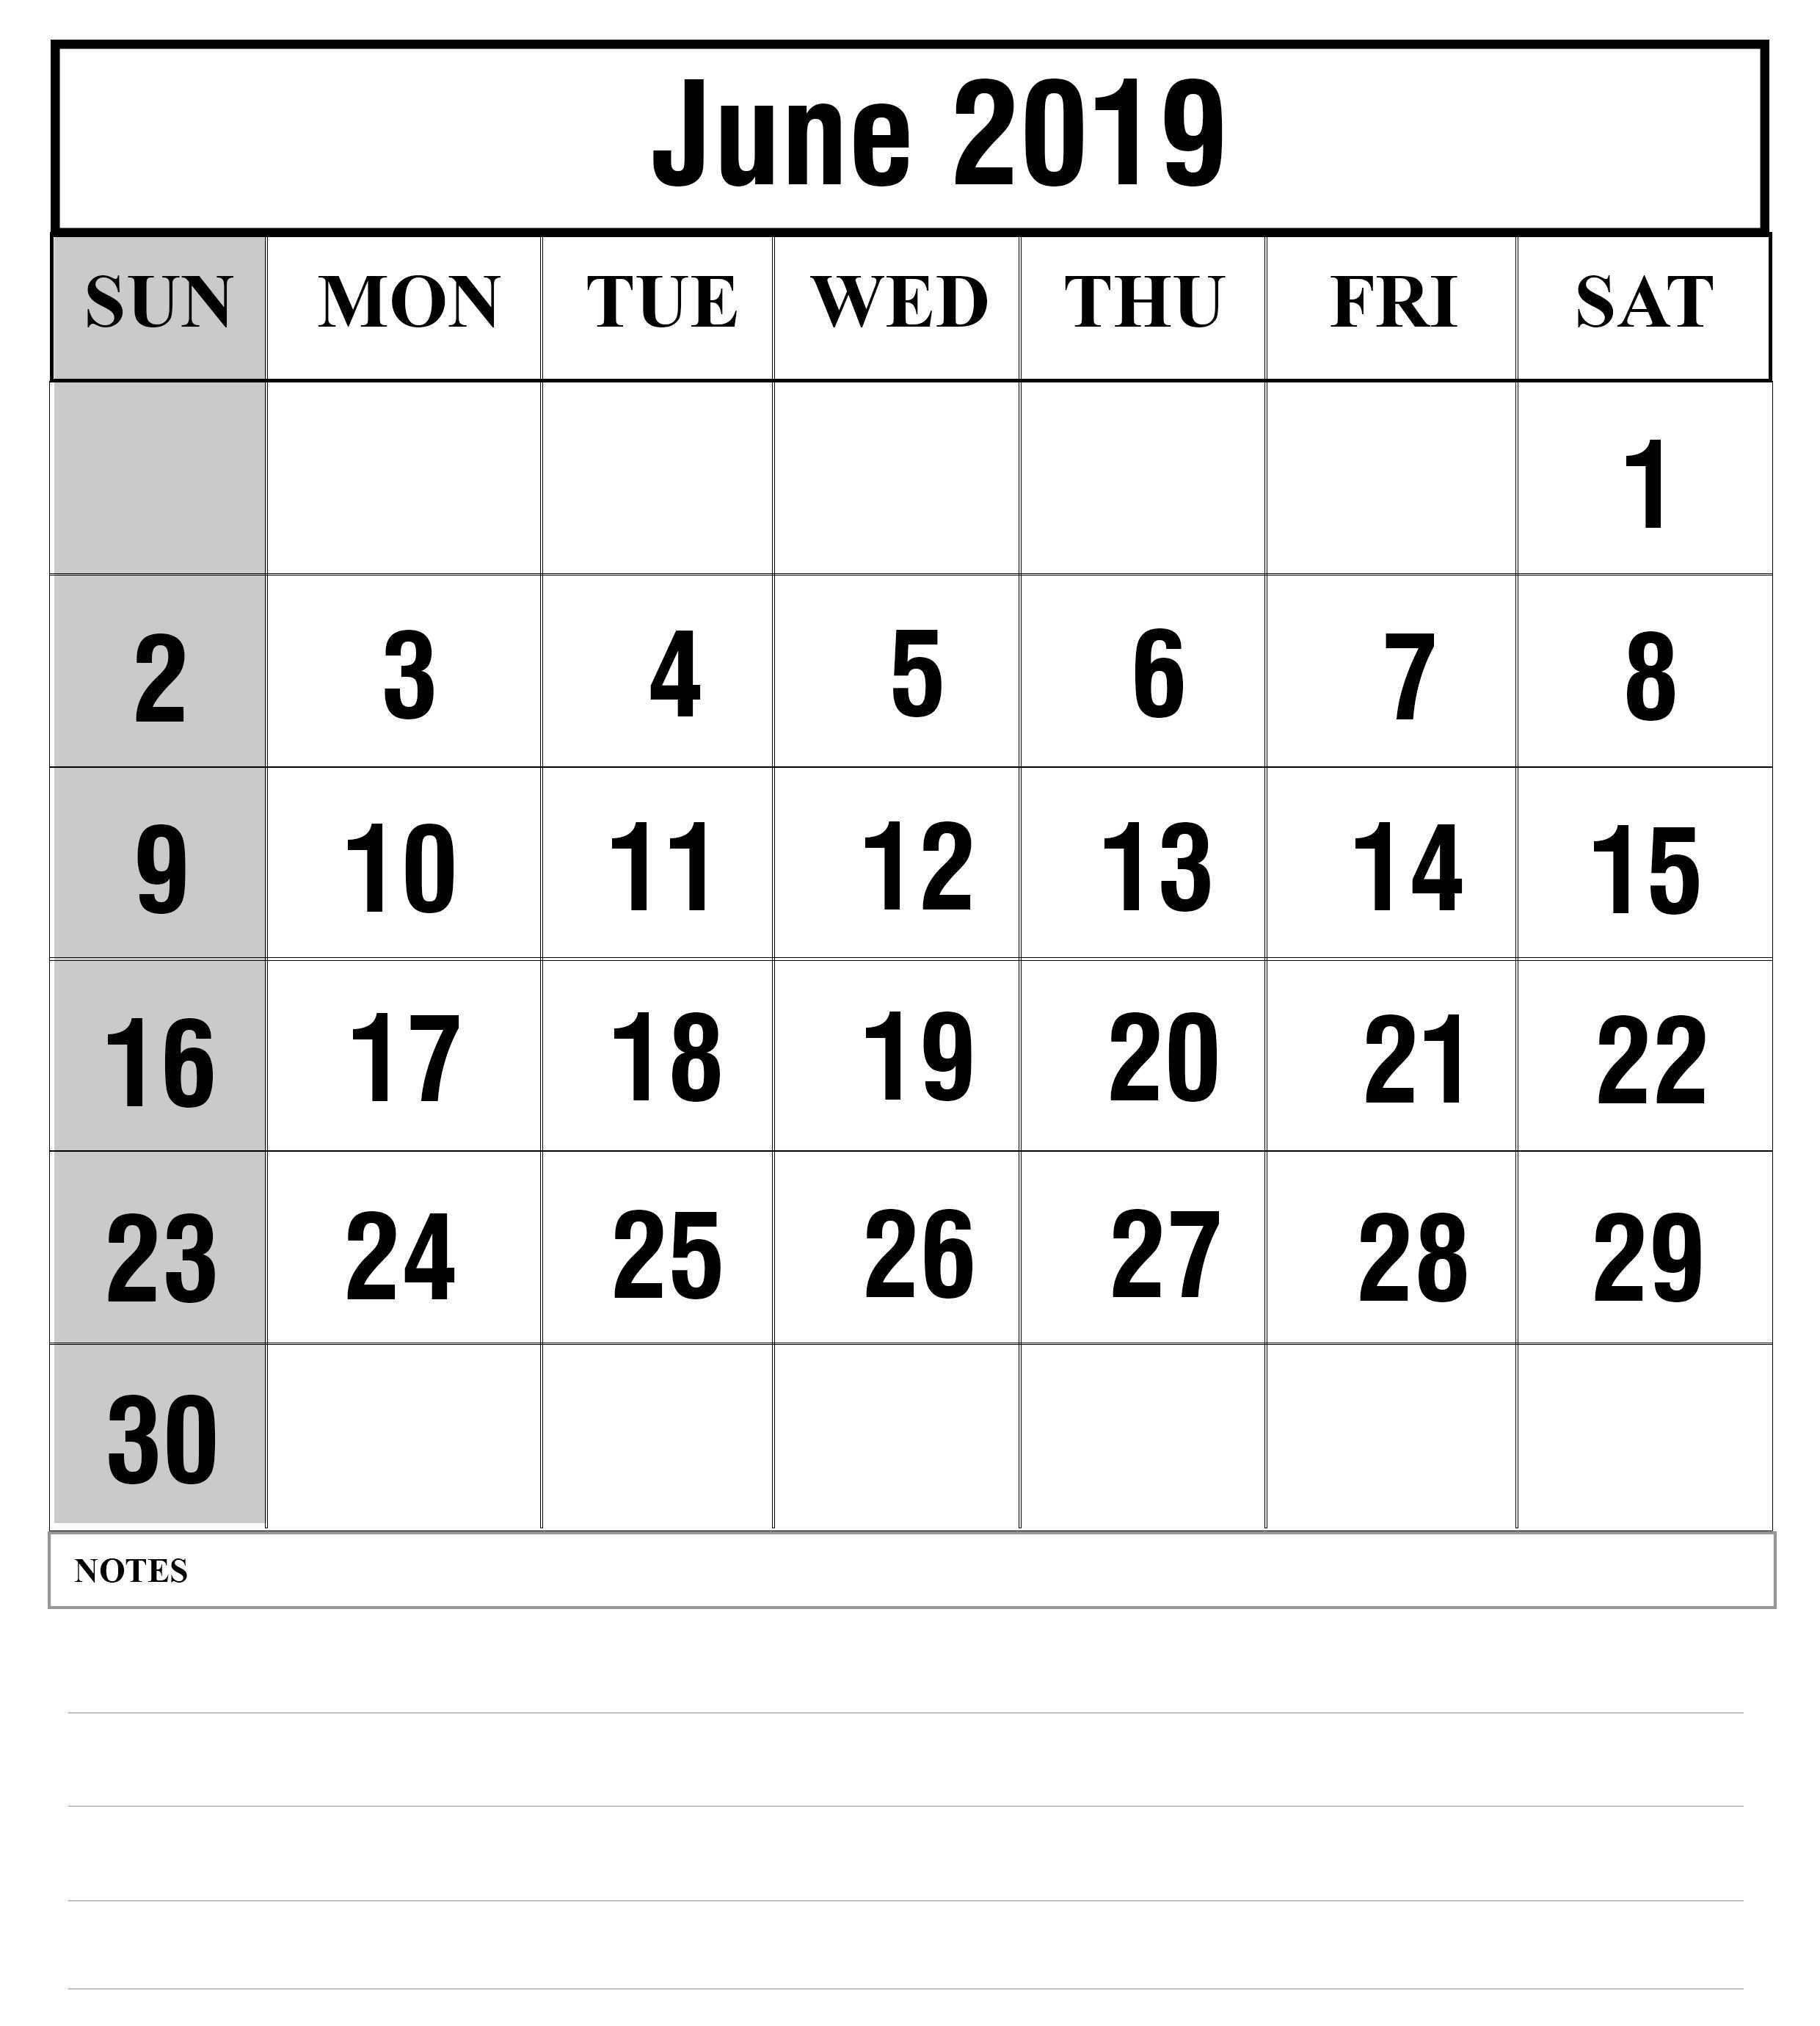 How To Schedule Your Month With June 2019 Printable Calendar | How inside Free At A Glance Editable Calendar July 2019-June 2020